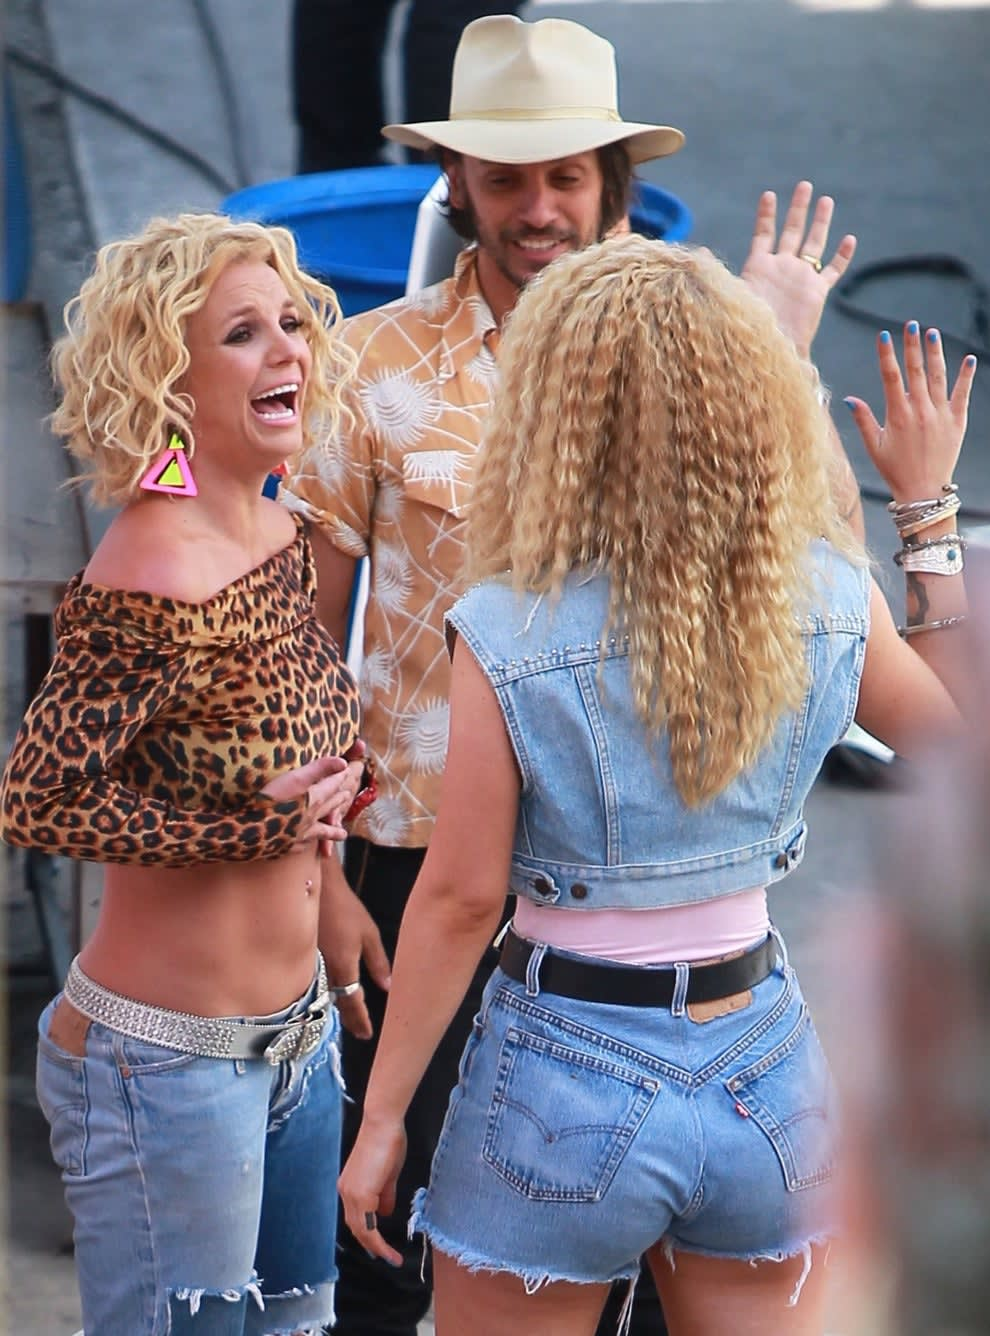 Britney and Iggy on set for their music video